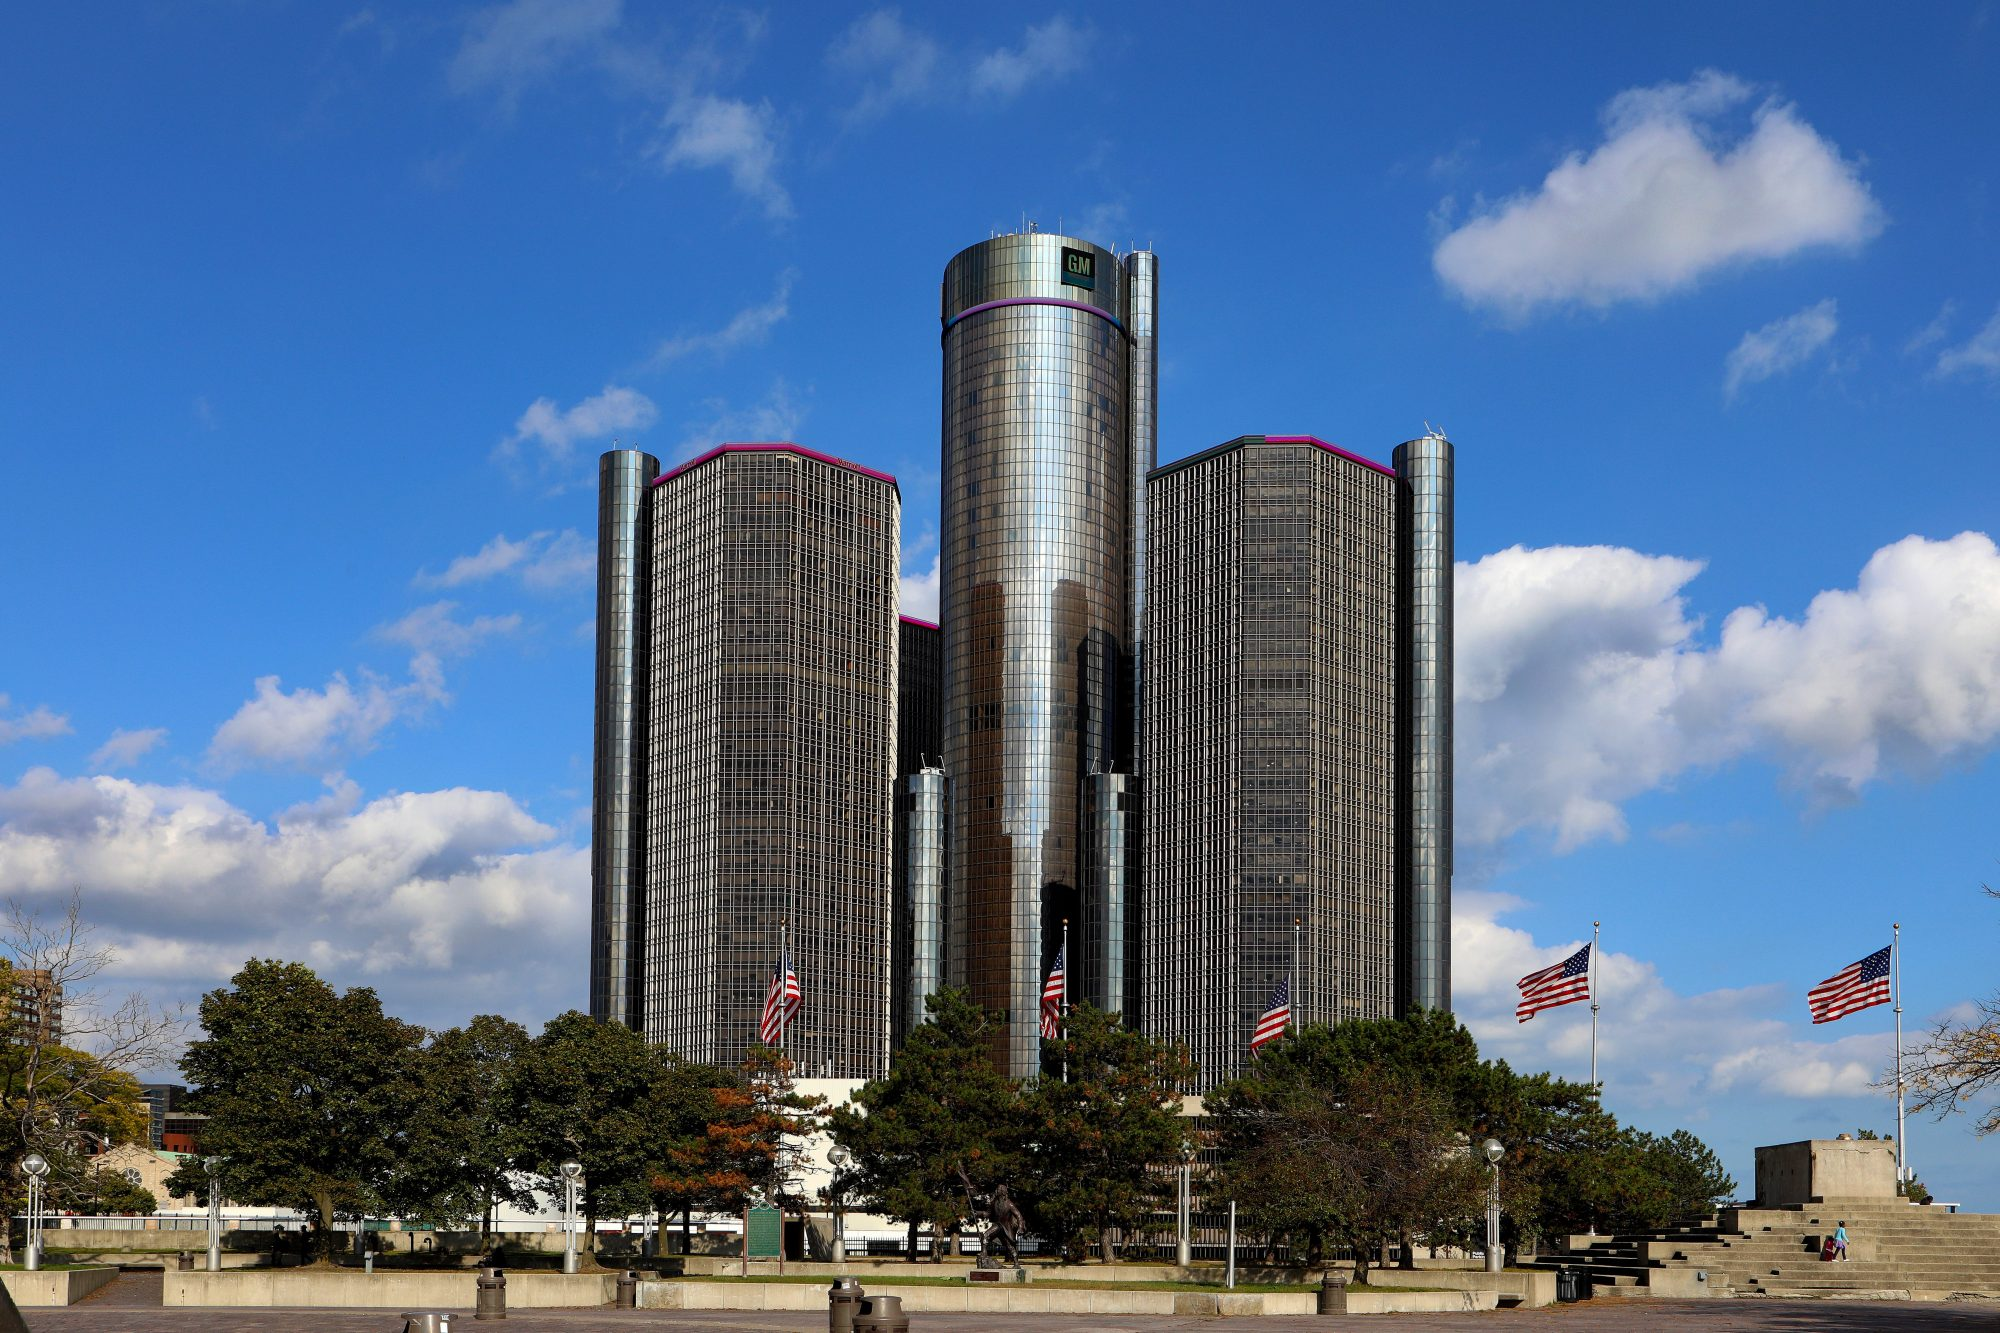 detroit-skyscrapers.jpg